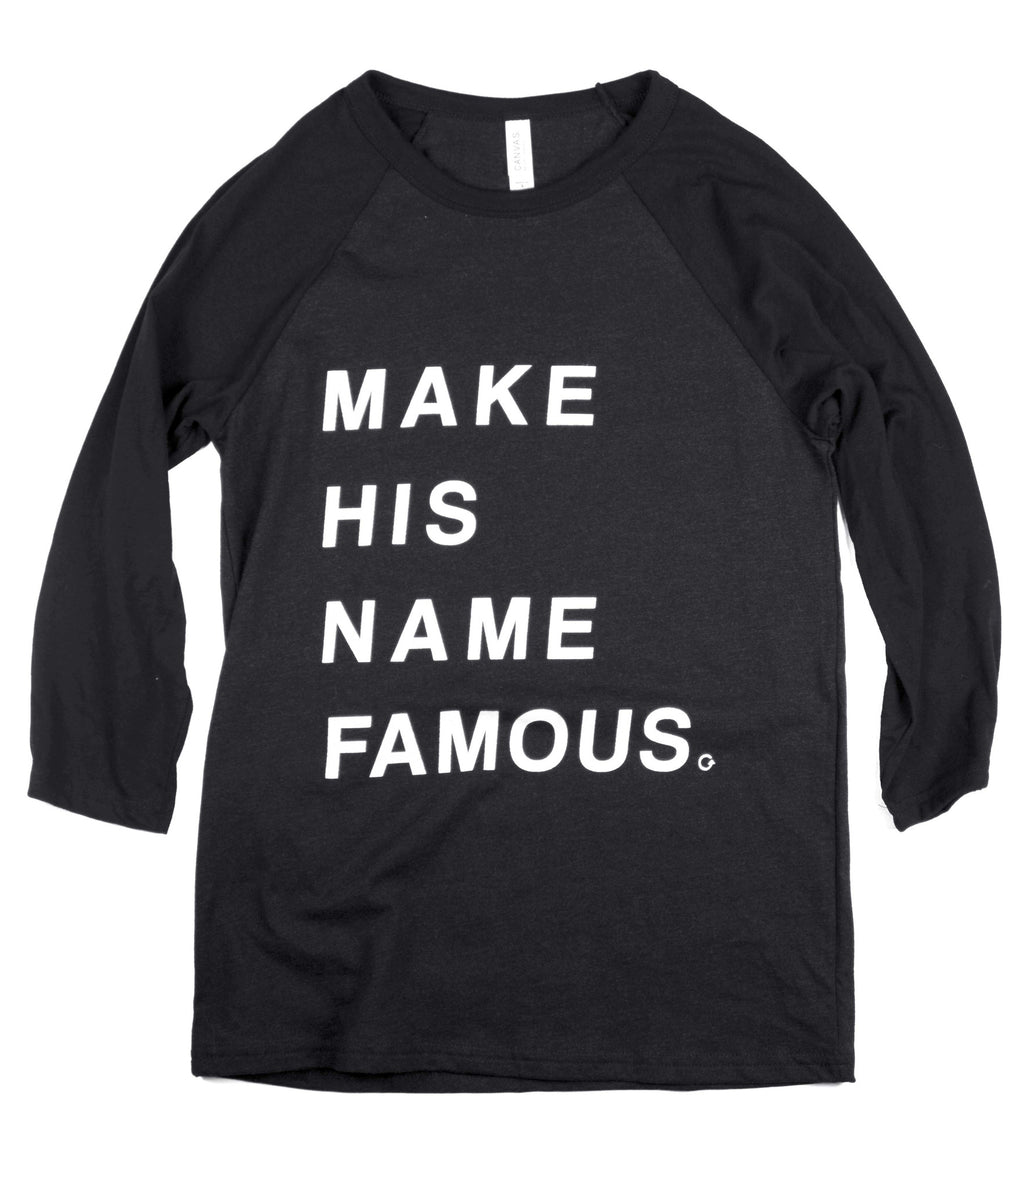 MAKE HIS NAME FAMOUS BLACK RAGLAN BASEBALL T-SHIRT